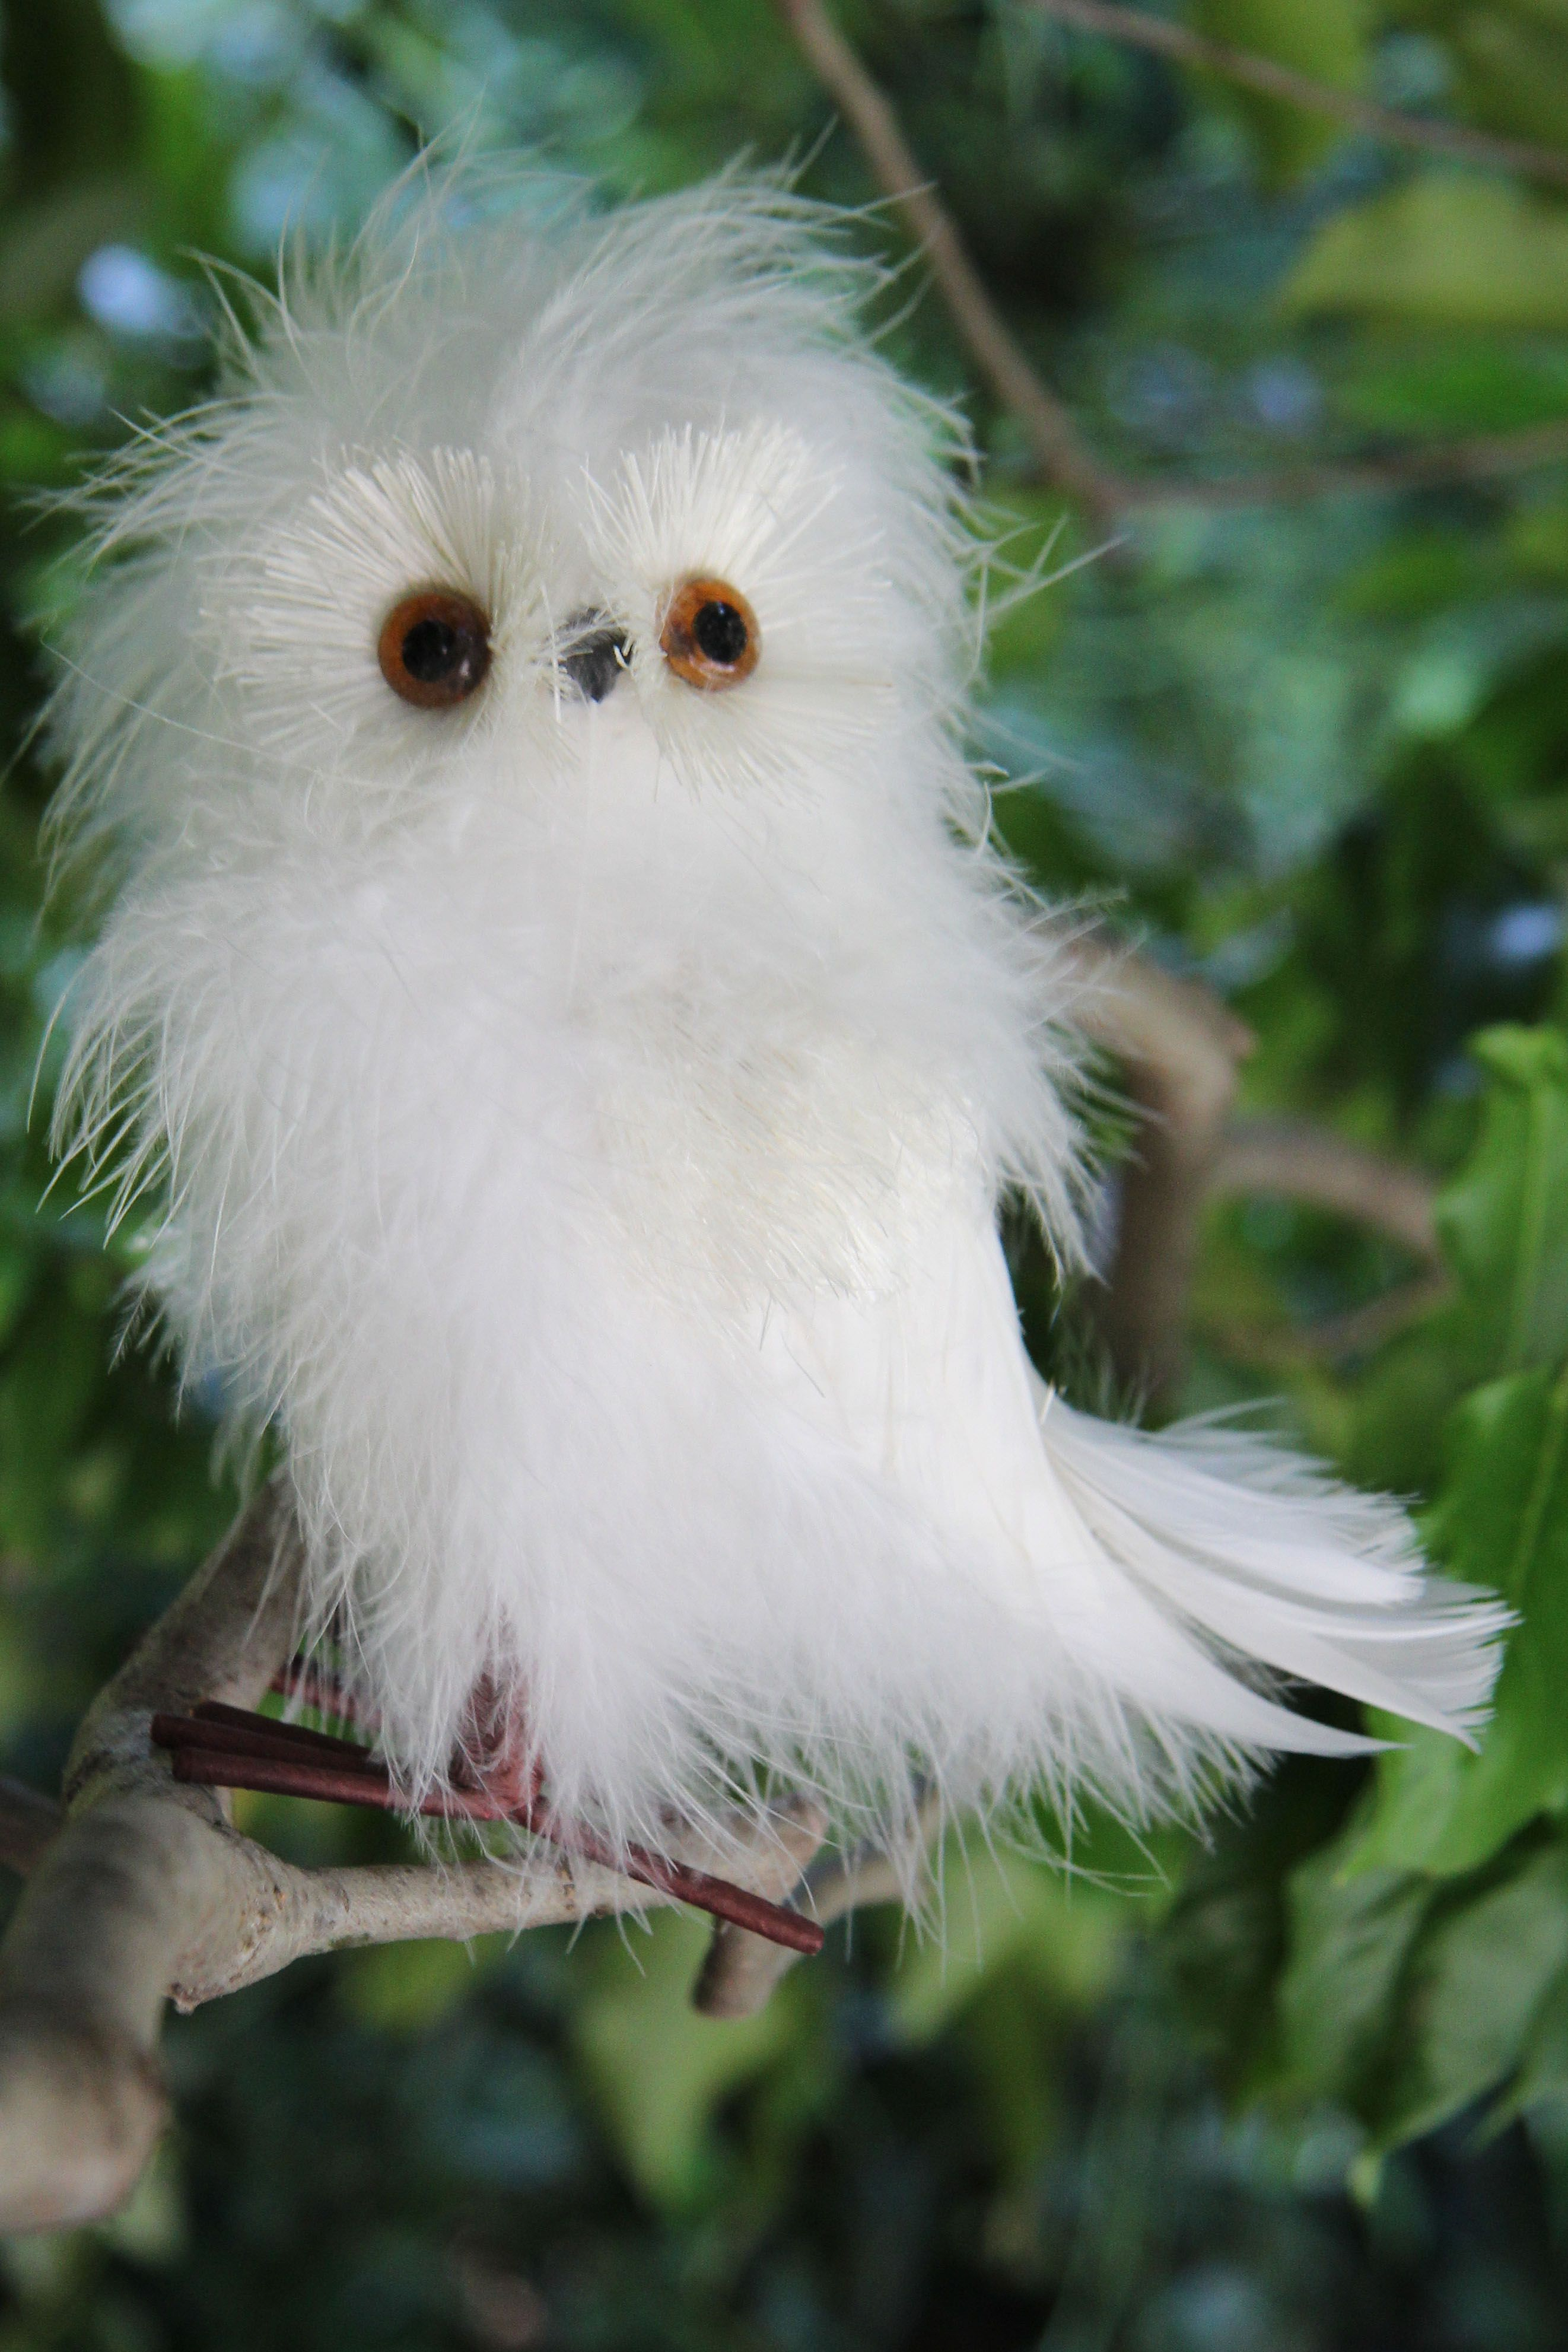 This Fluffy Owl Would Be Adorable Tucked Into A Halloween